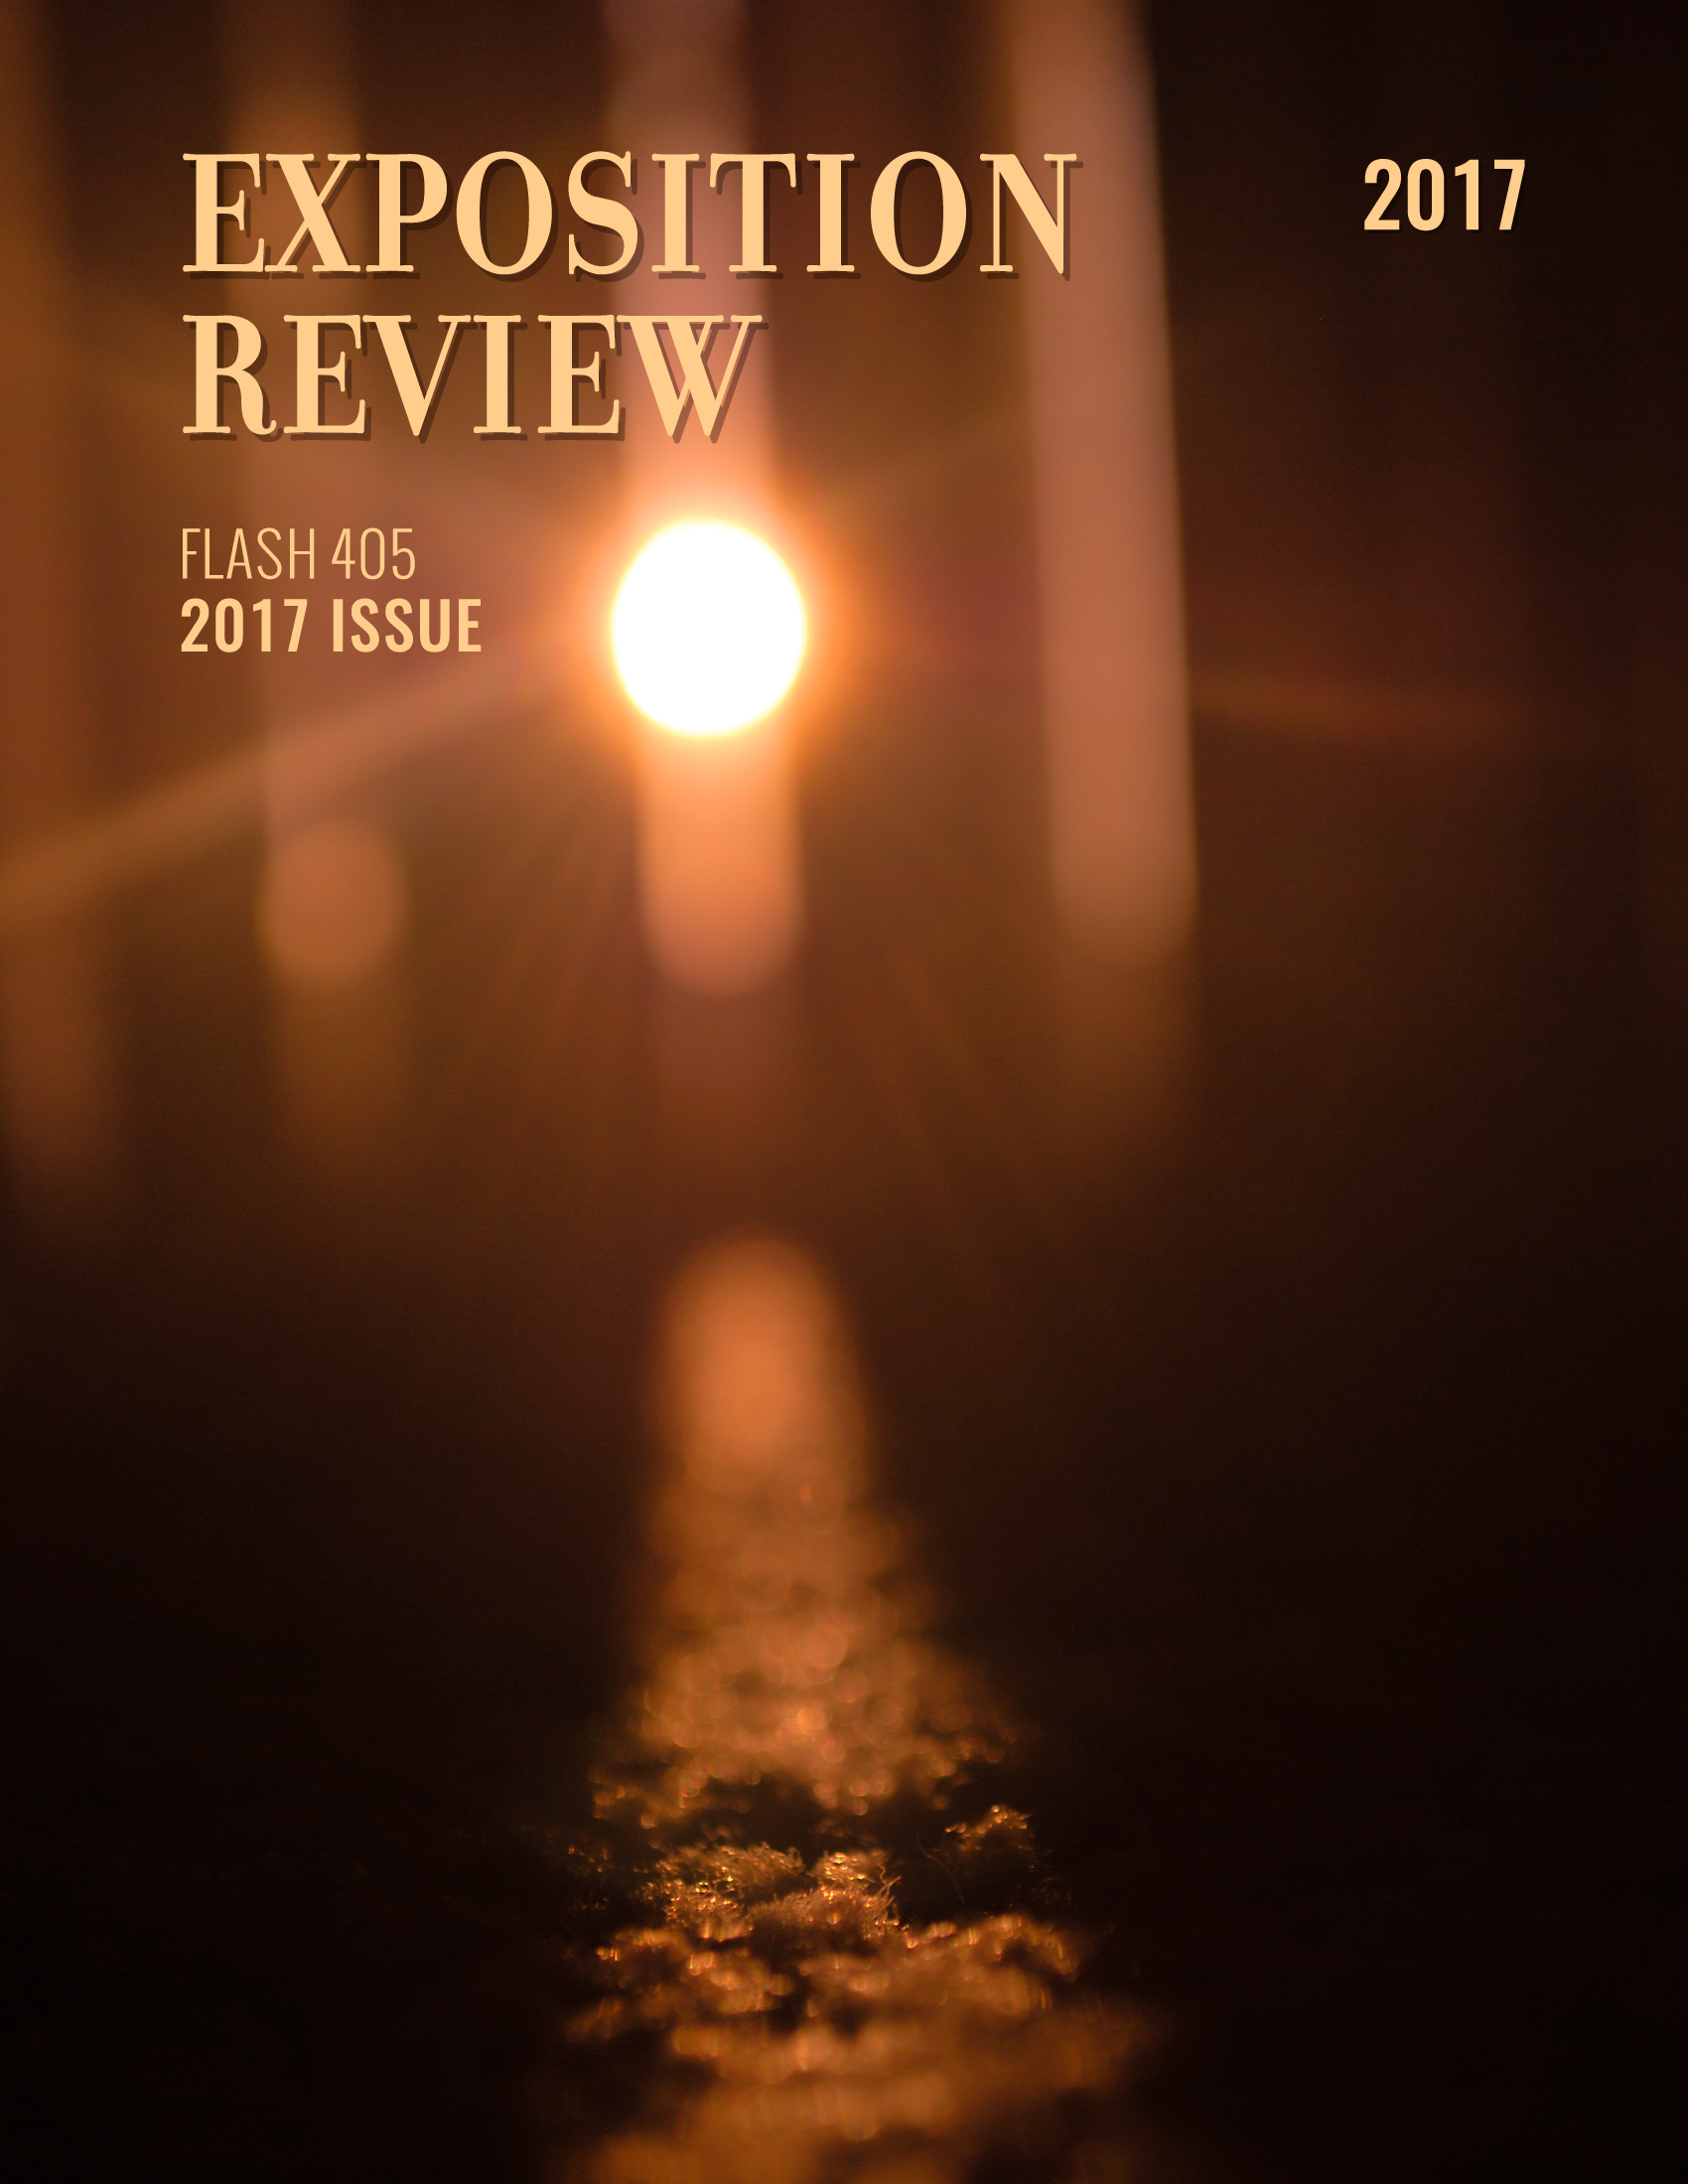 Exposition Review Flash 405 2017 Issue